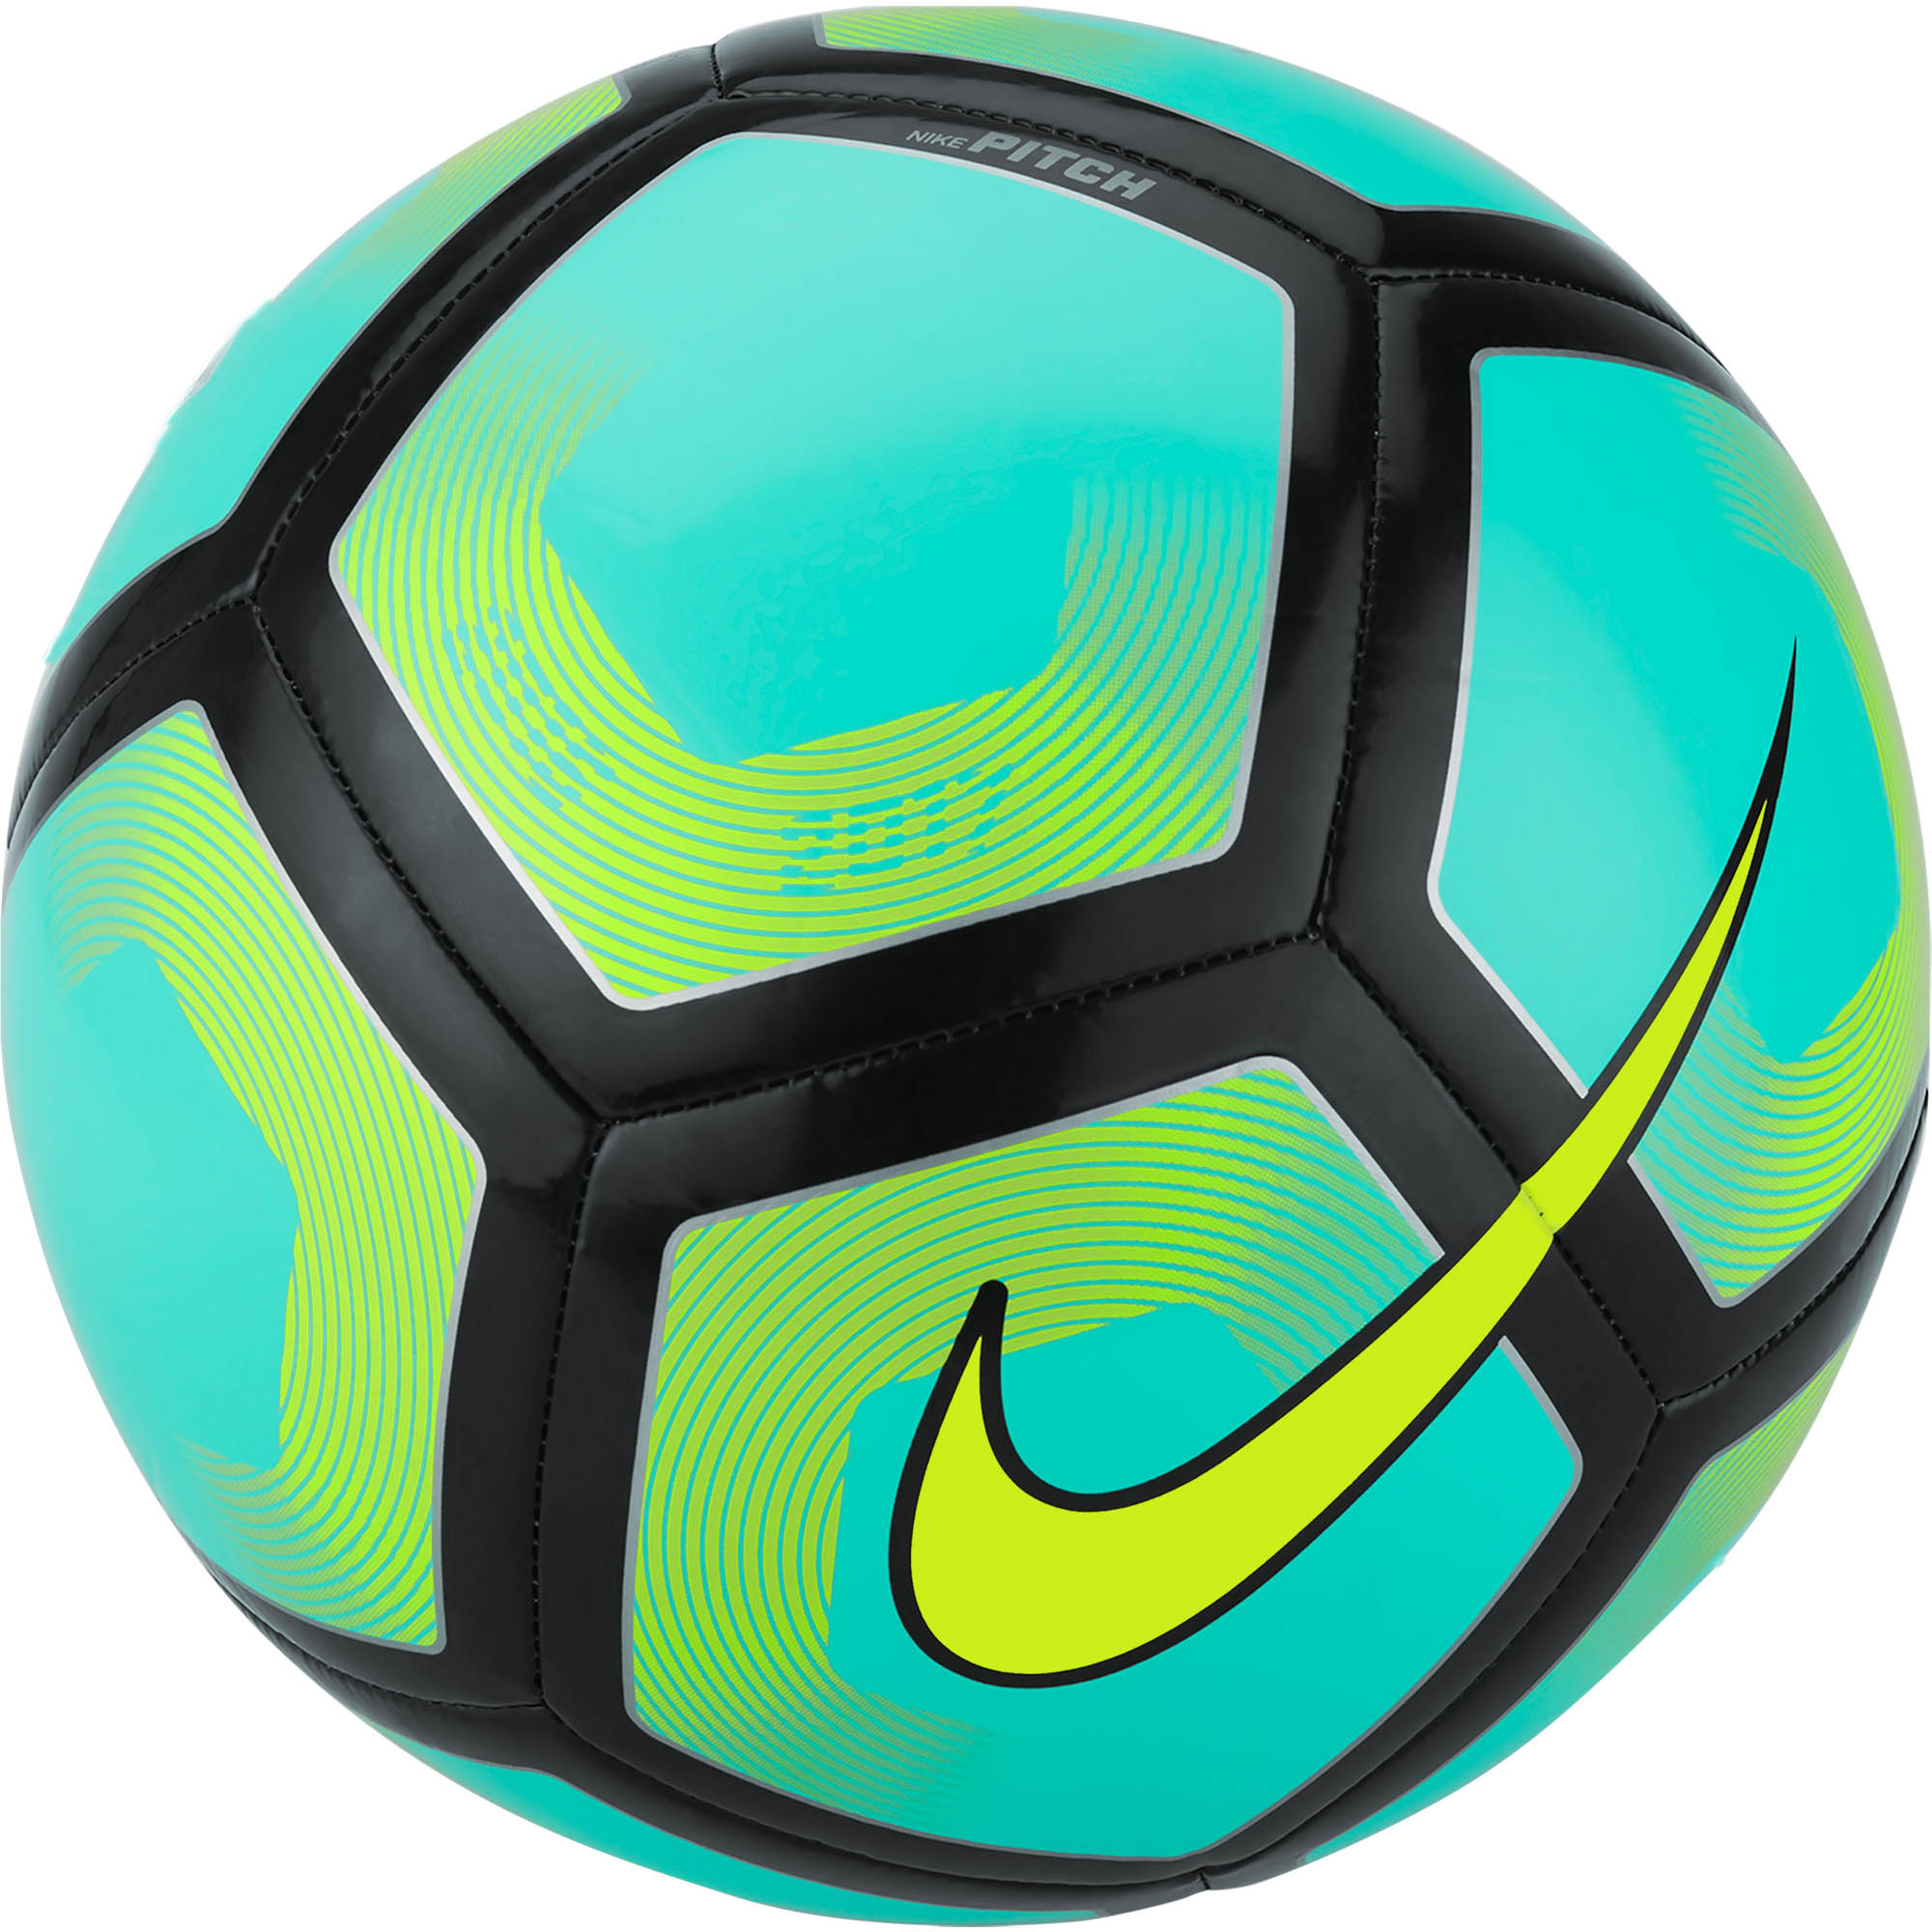 Nike Pitch - Blue Pitch Soccer Balls